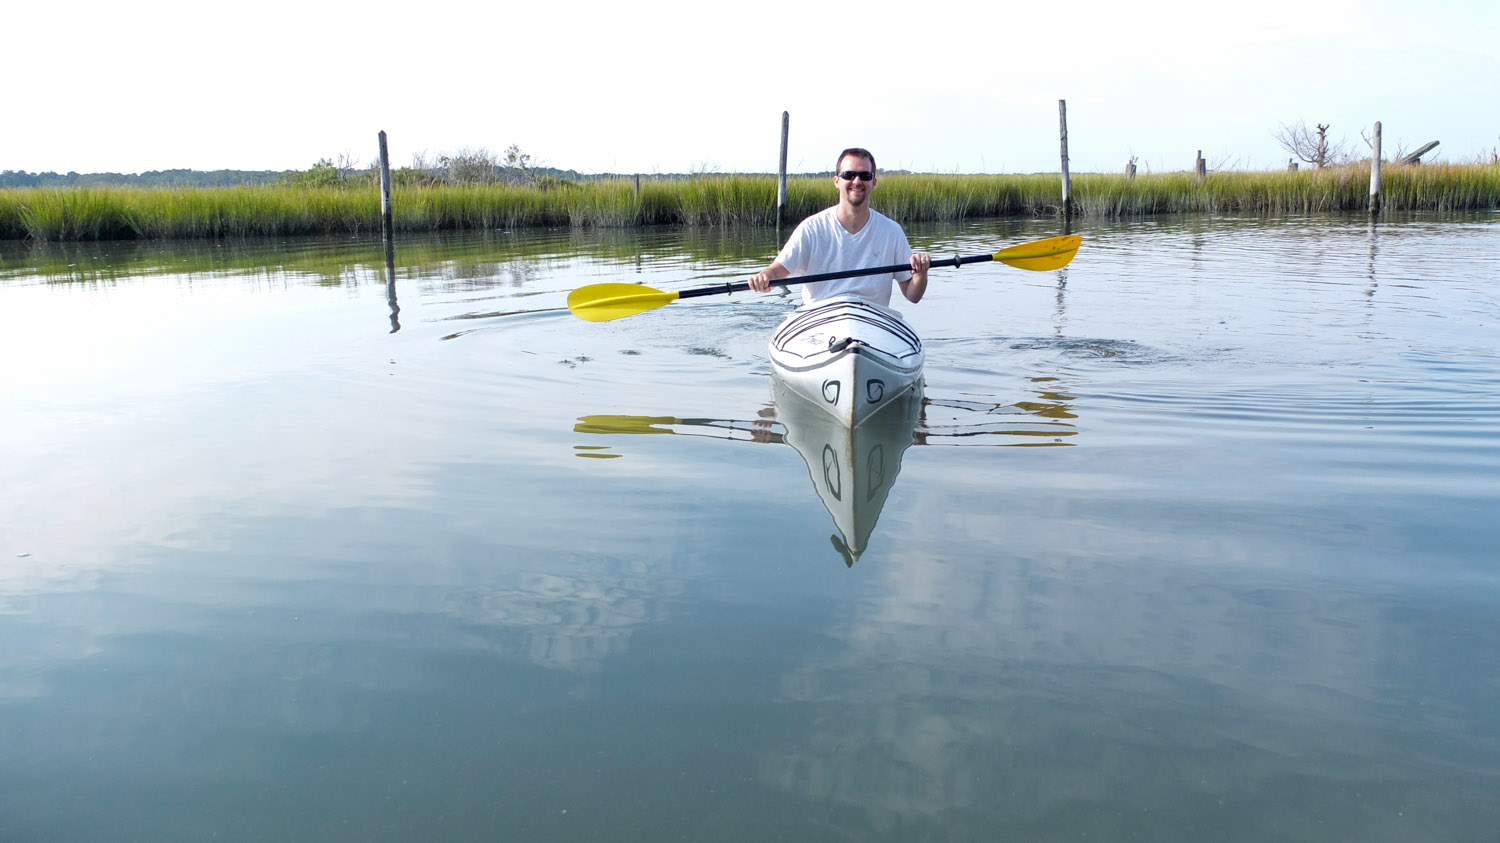 K im took this photo of me just before I paddled out into the marsh.